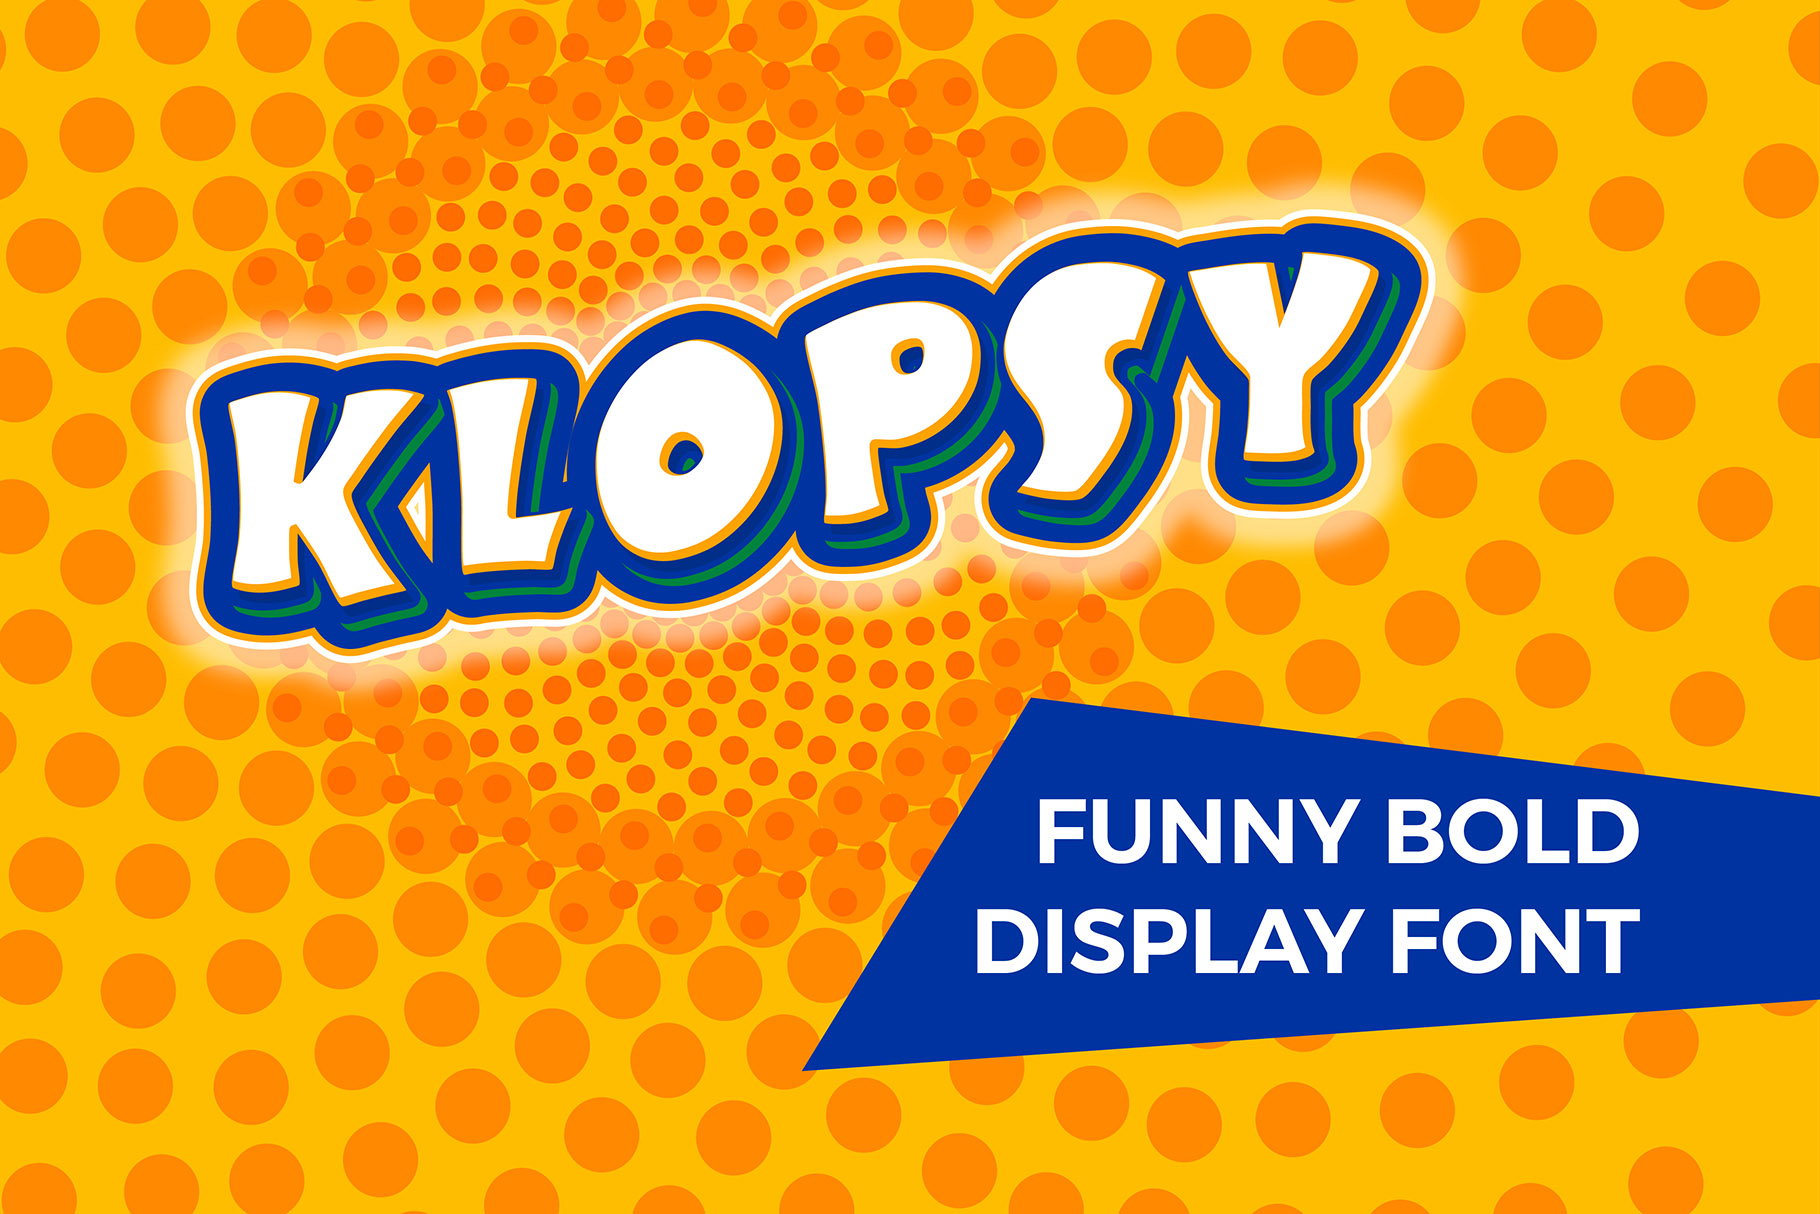 KLOPSY - funny bold display font example image 1